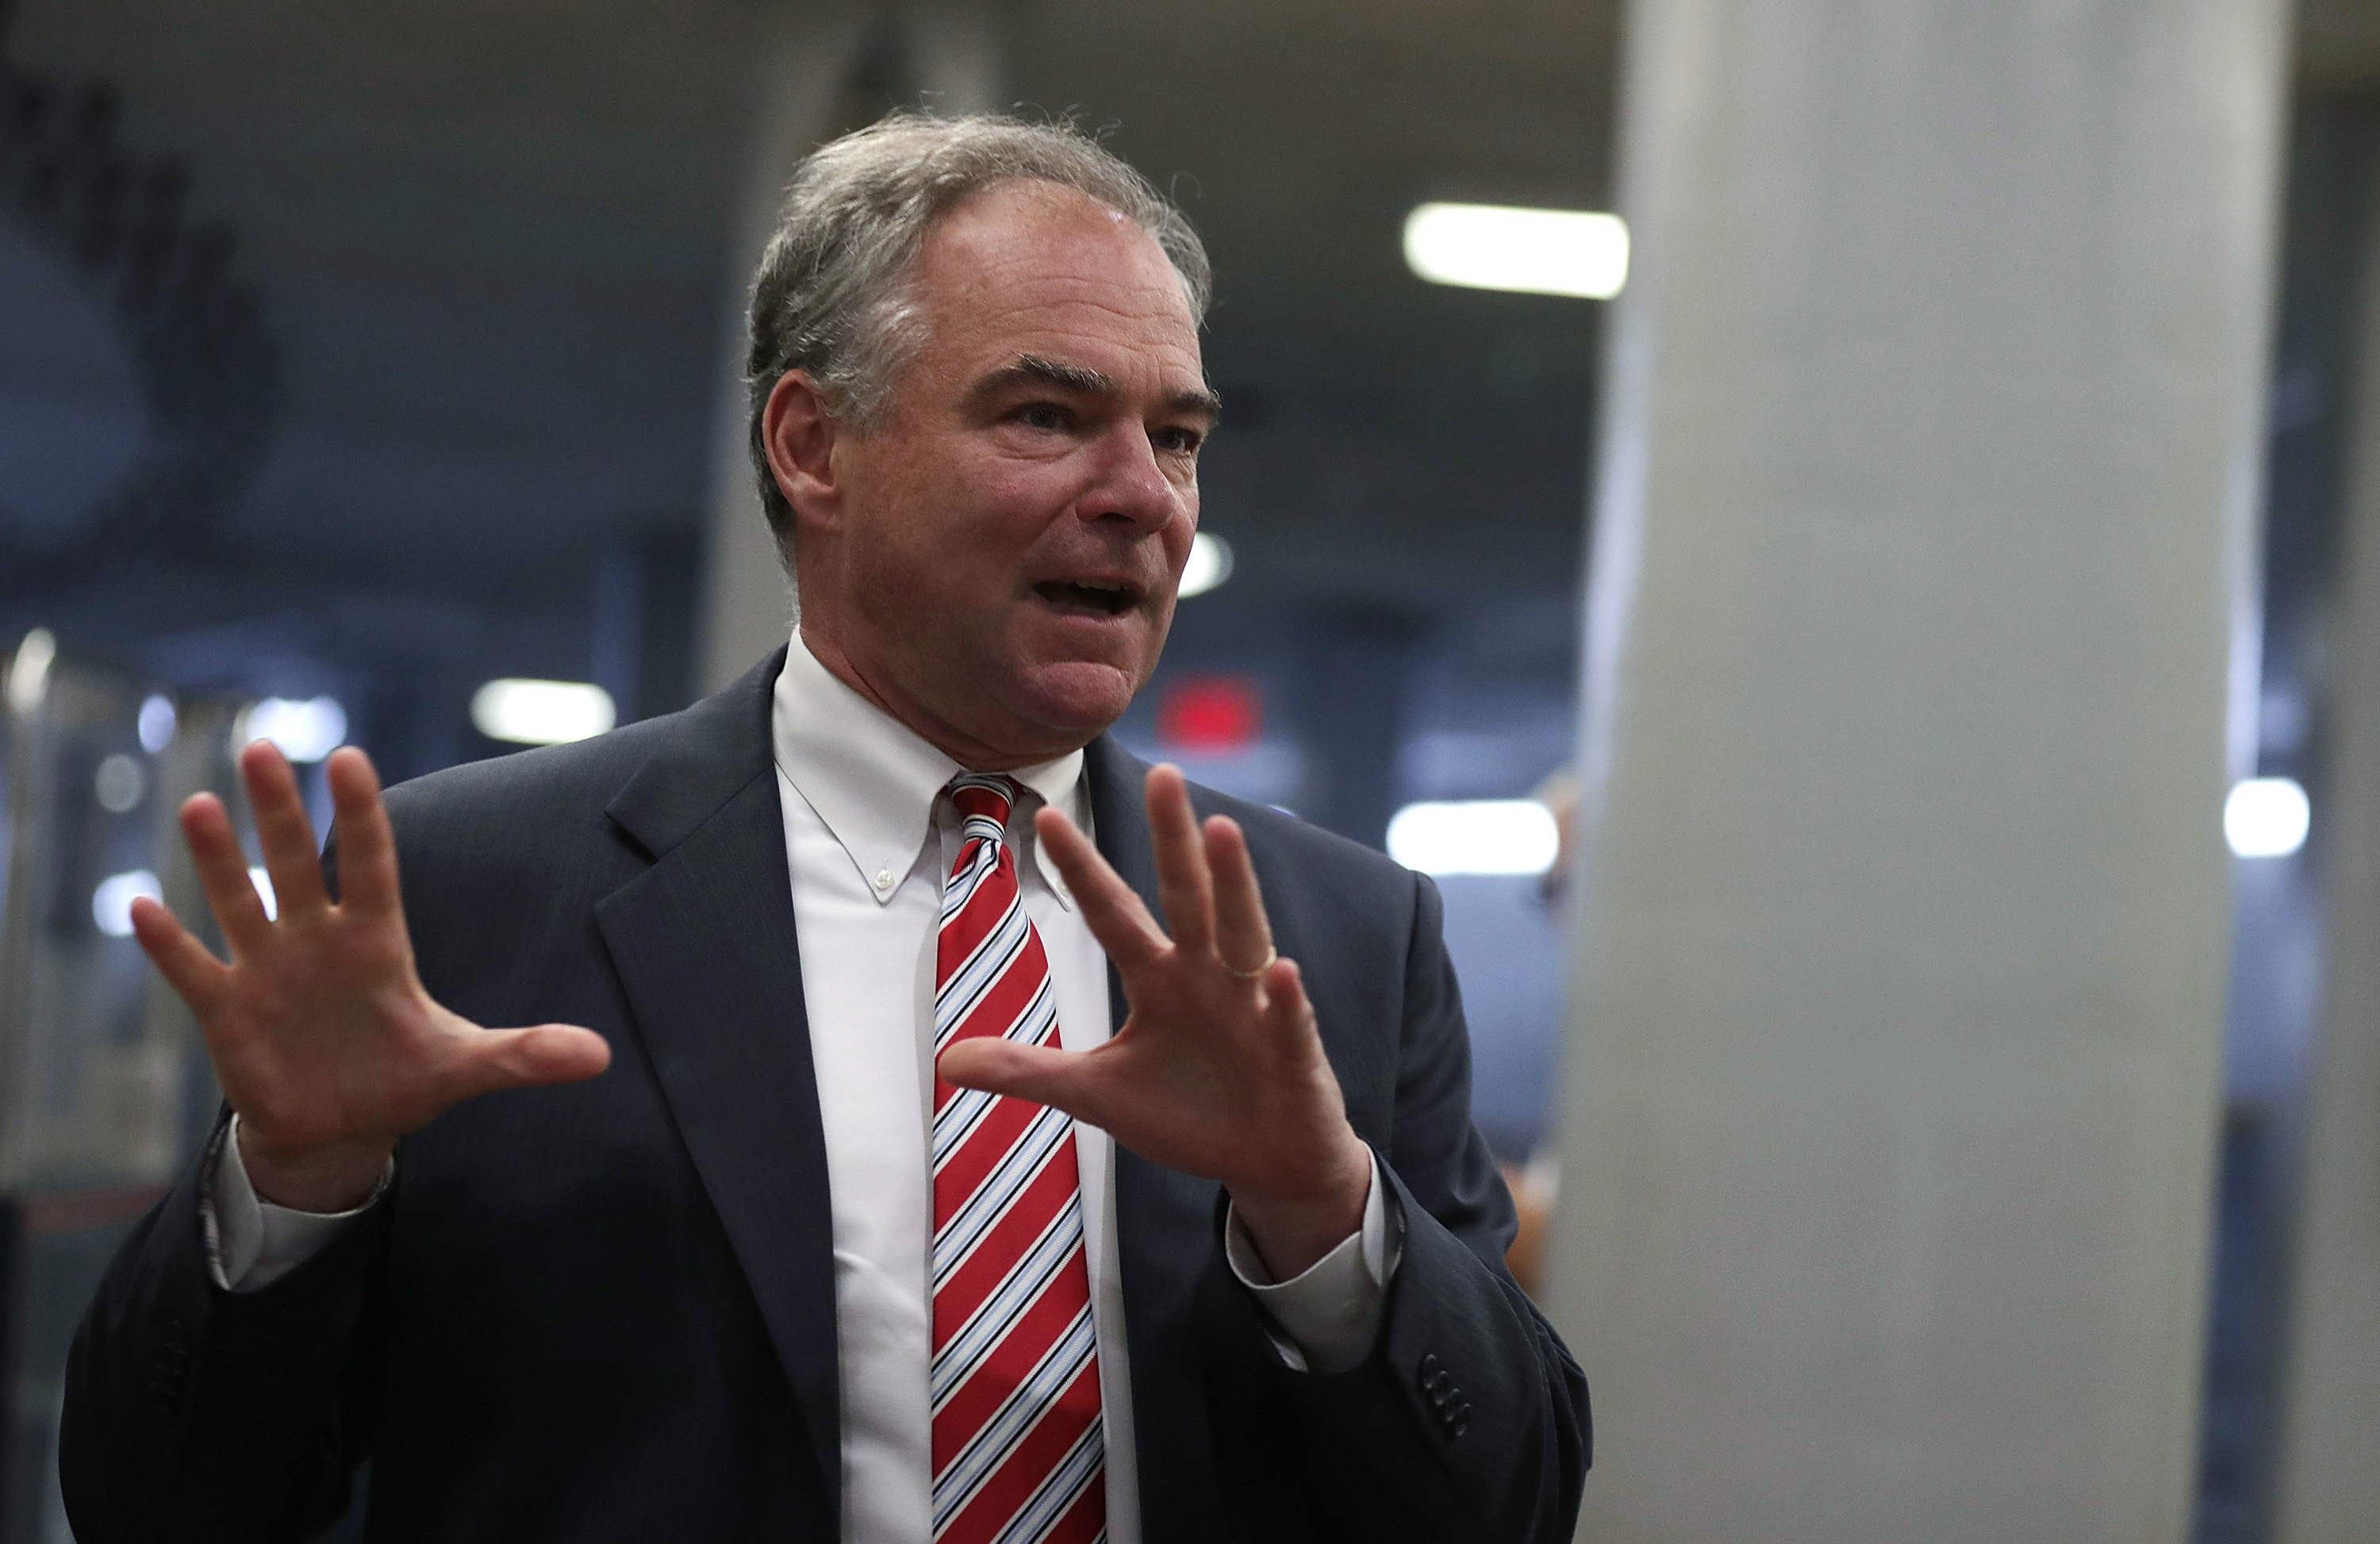 On Friday, Hillary Clinton chose Sen. Tim Kaine of Virginia to be her running mate. (Photo by Alex Wong/Getty Images)